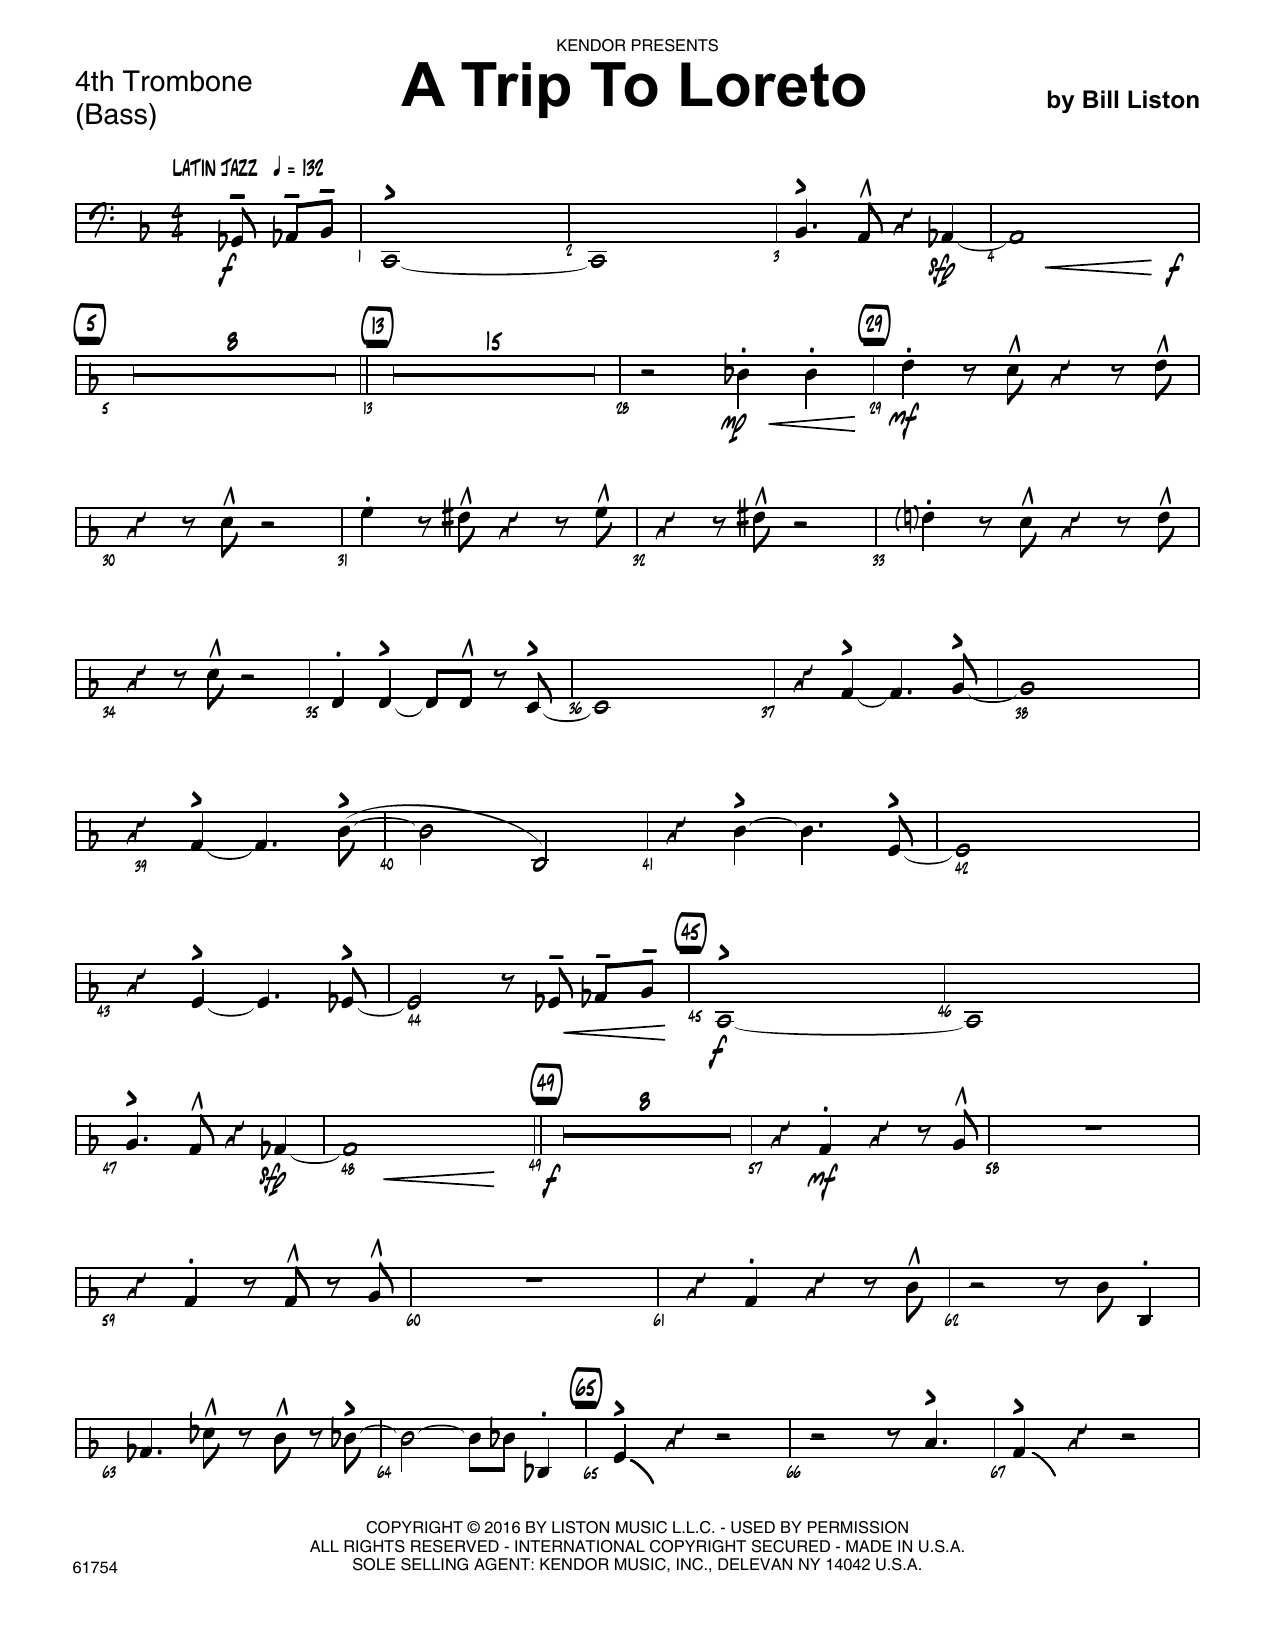 A Trip To Loreto - 4th Trombone Sheet Music